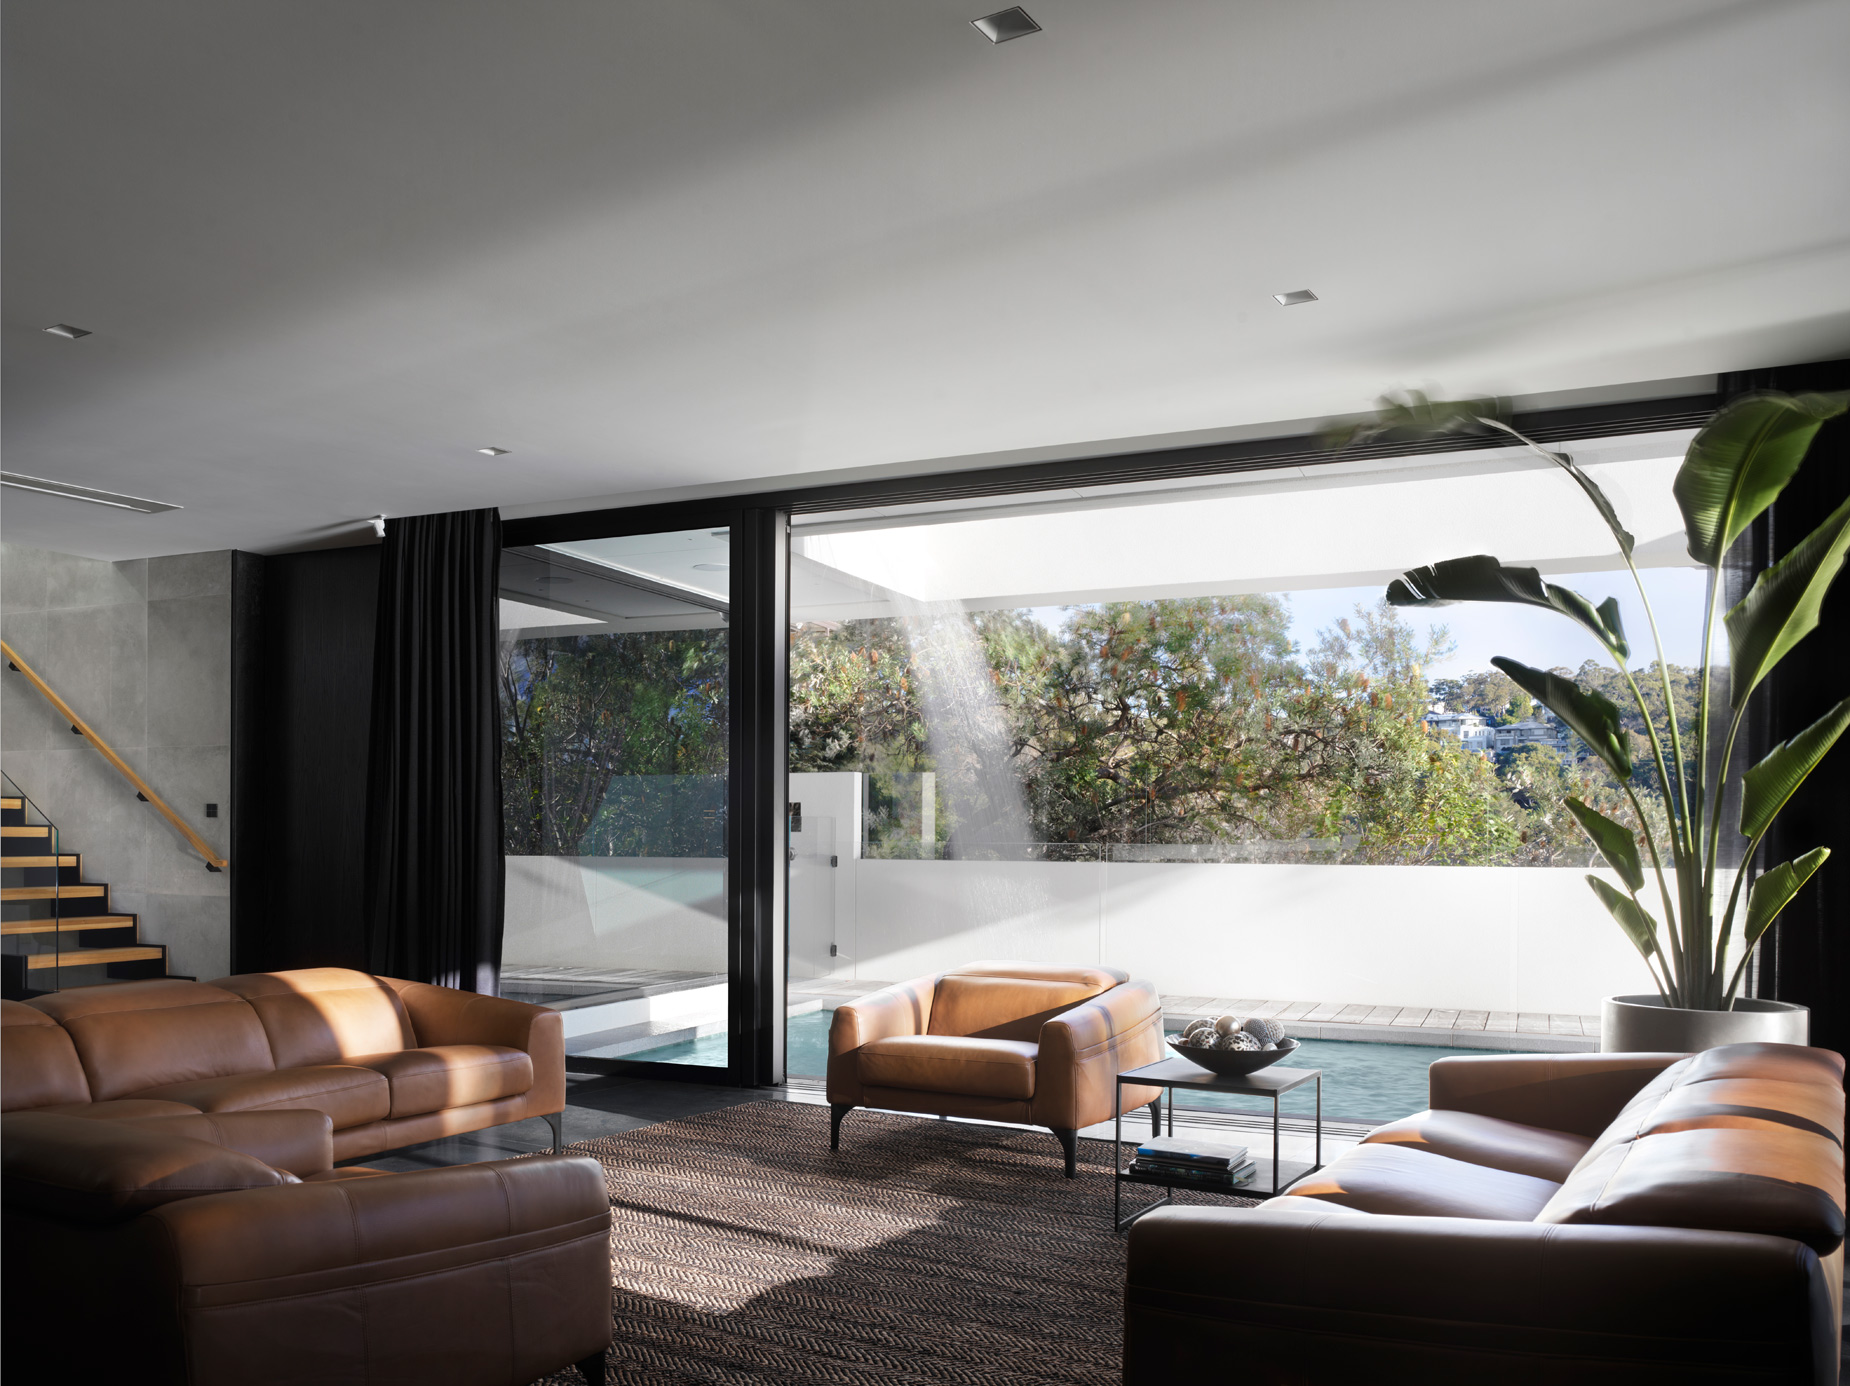 luke-butterly-2020-Oyster-Bay-House-by-Couvaras-Architecture-Sydney-NSW-14